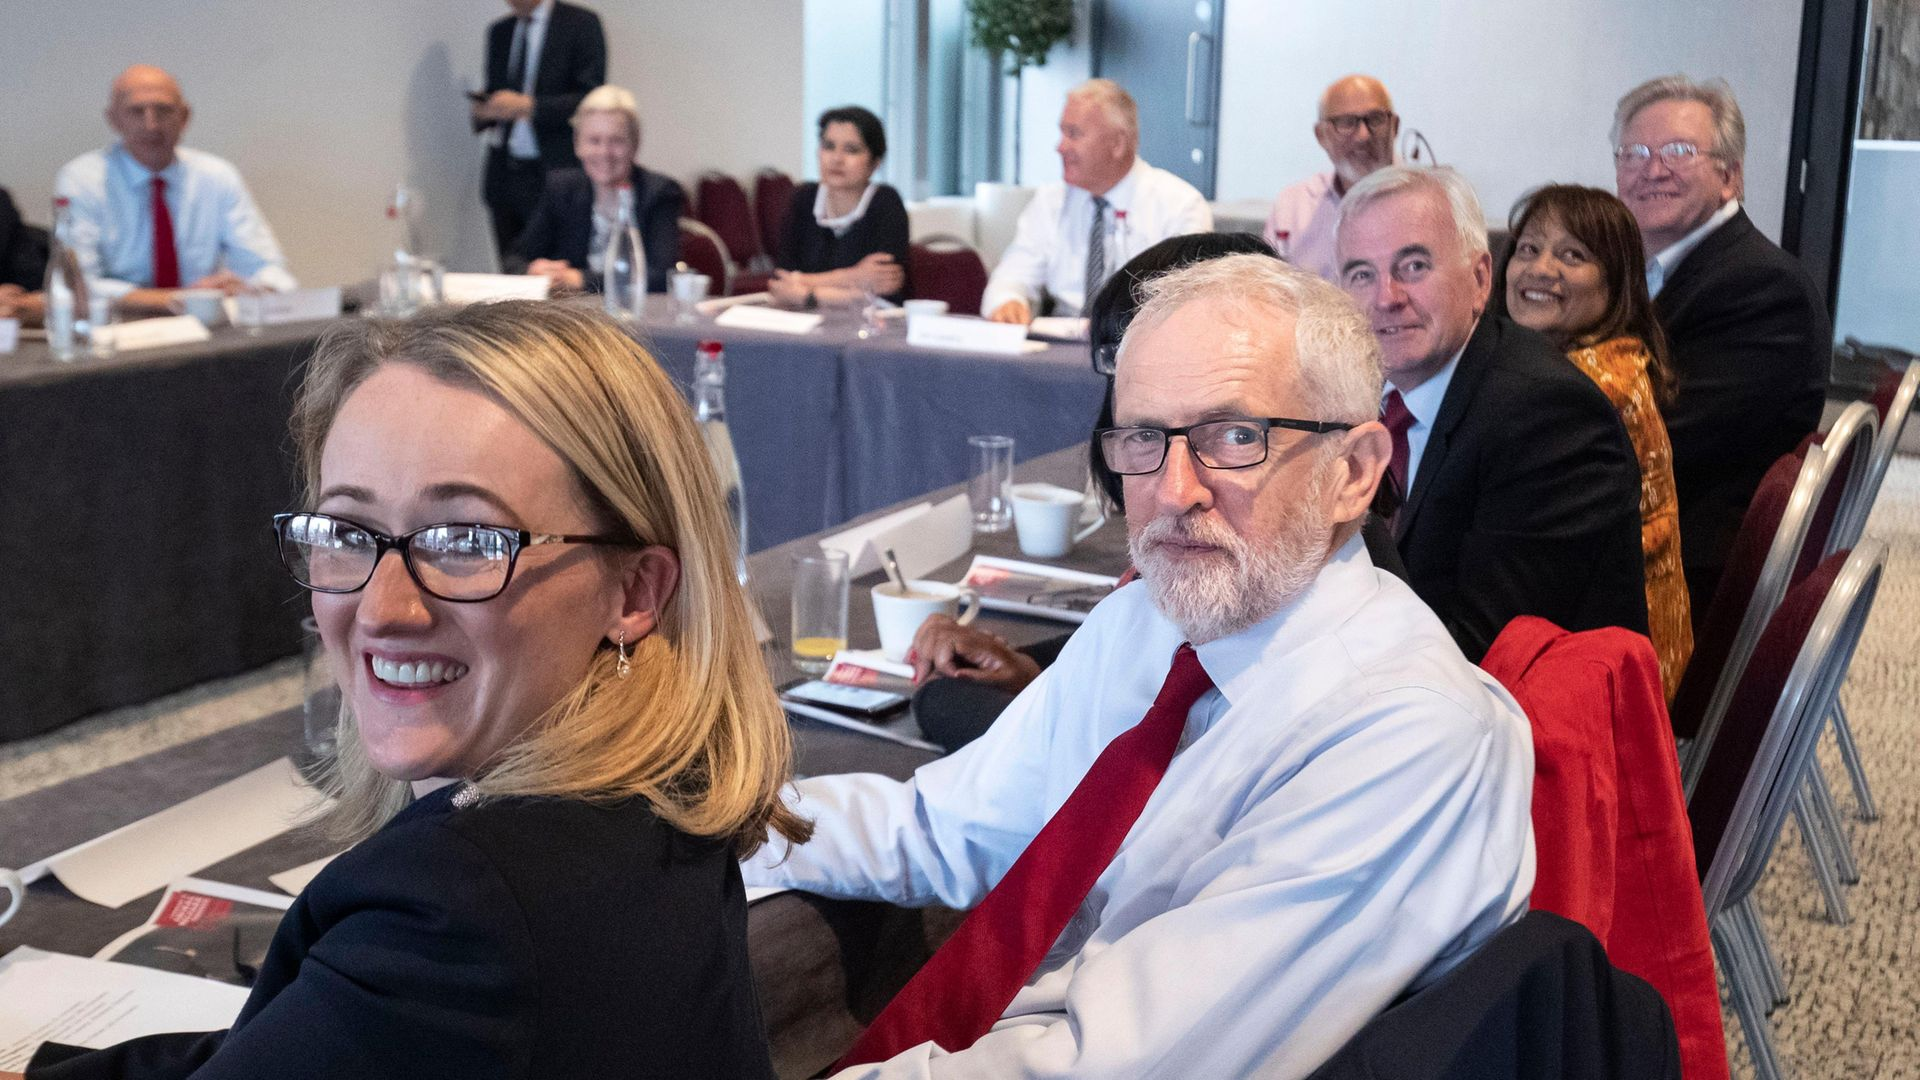 Rebecca Long-Bailey and Jeremy Corbyn attend a shadow cabinet meeting - Credit: Getty Images